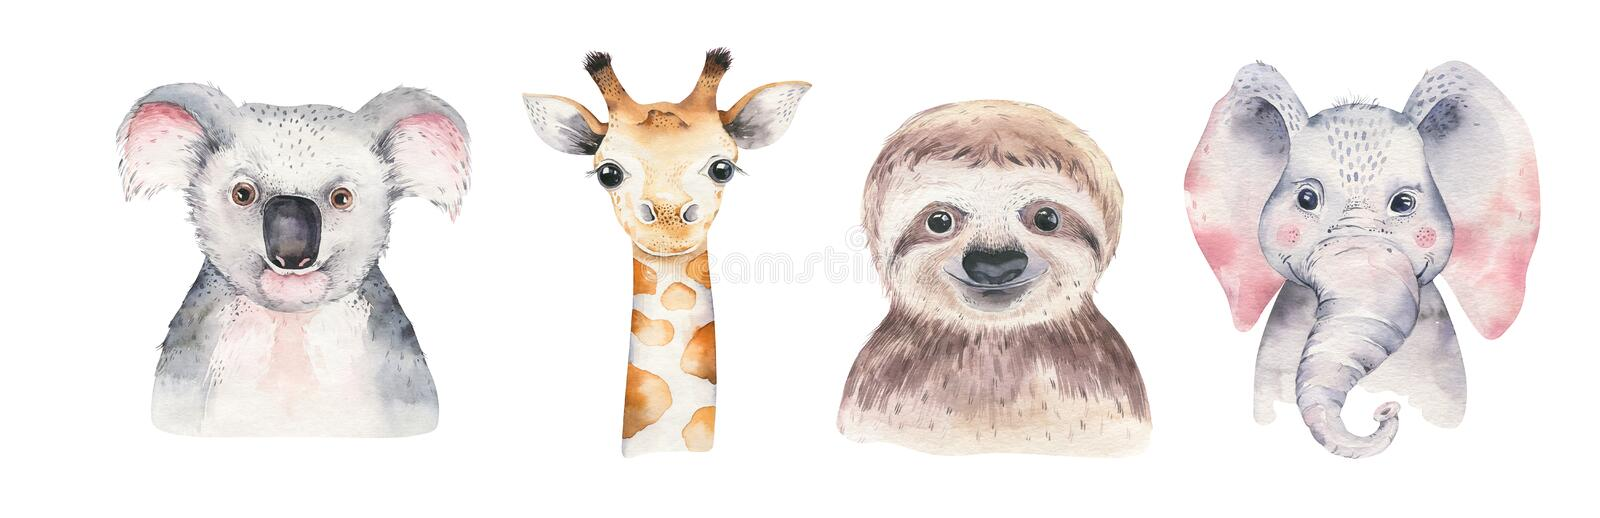 A poster with a baby panda, sloth, giraffe and koala. Watercolor cartoon elephant tropical animal illustration. Jungle stock photography